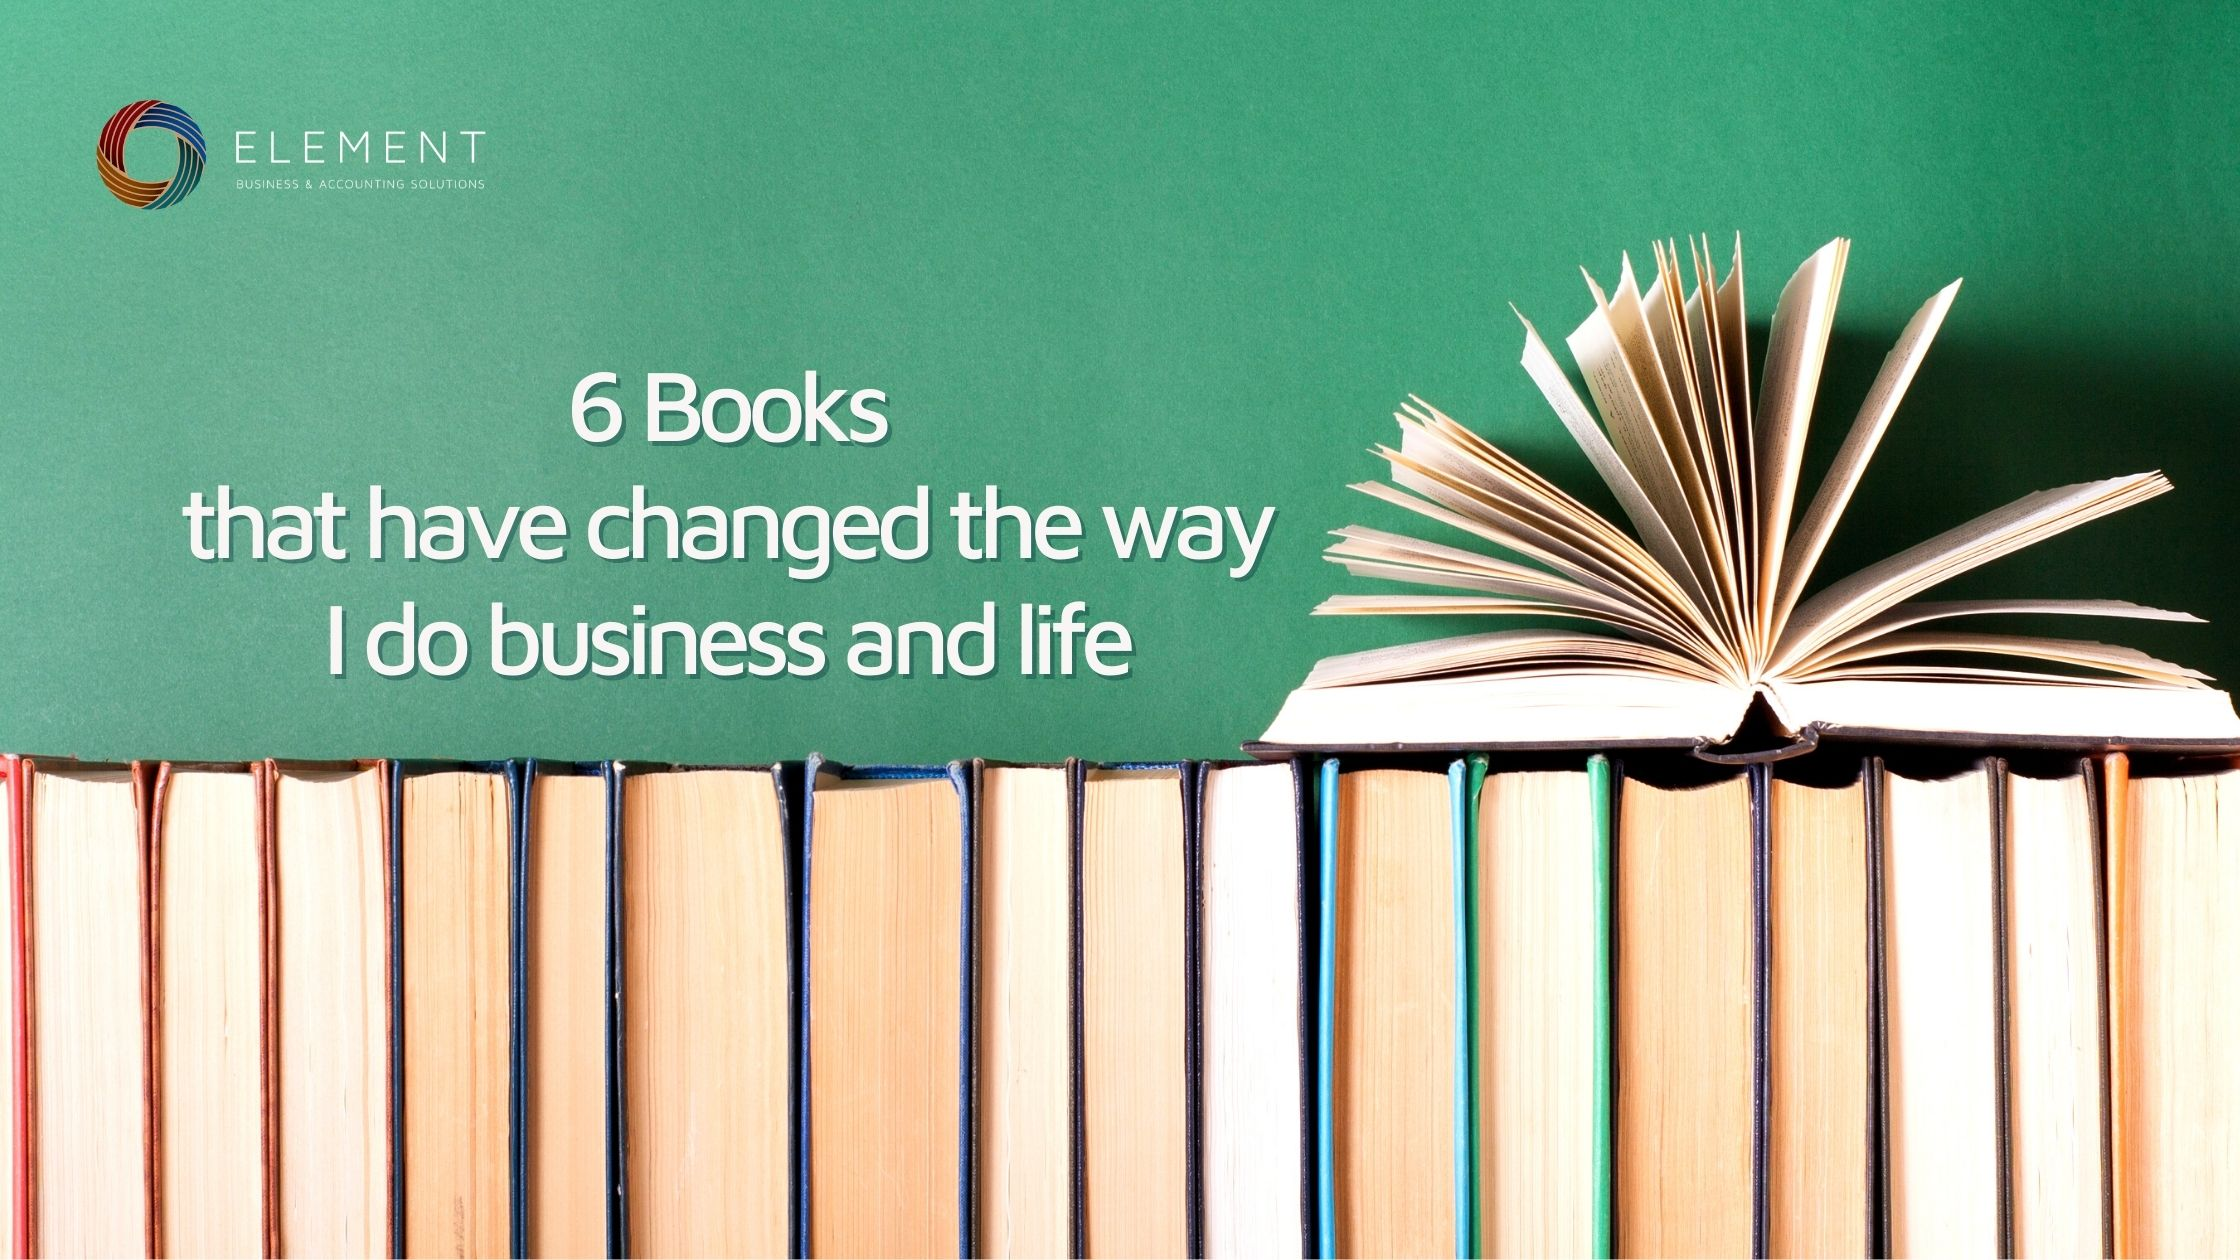 6 books that have changed the way I do business and life